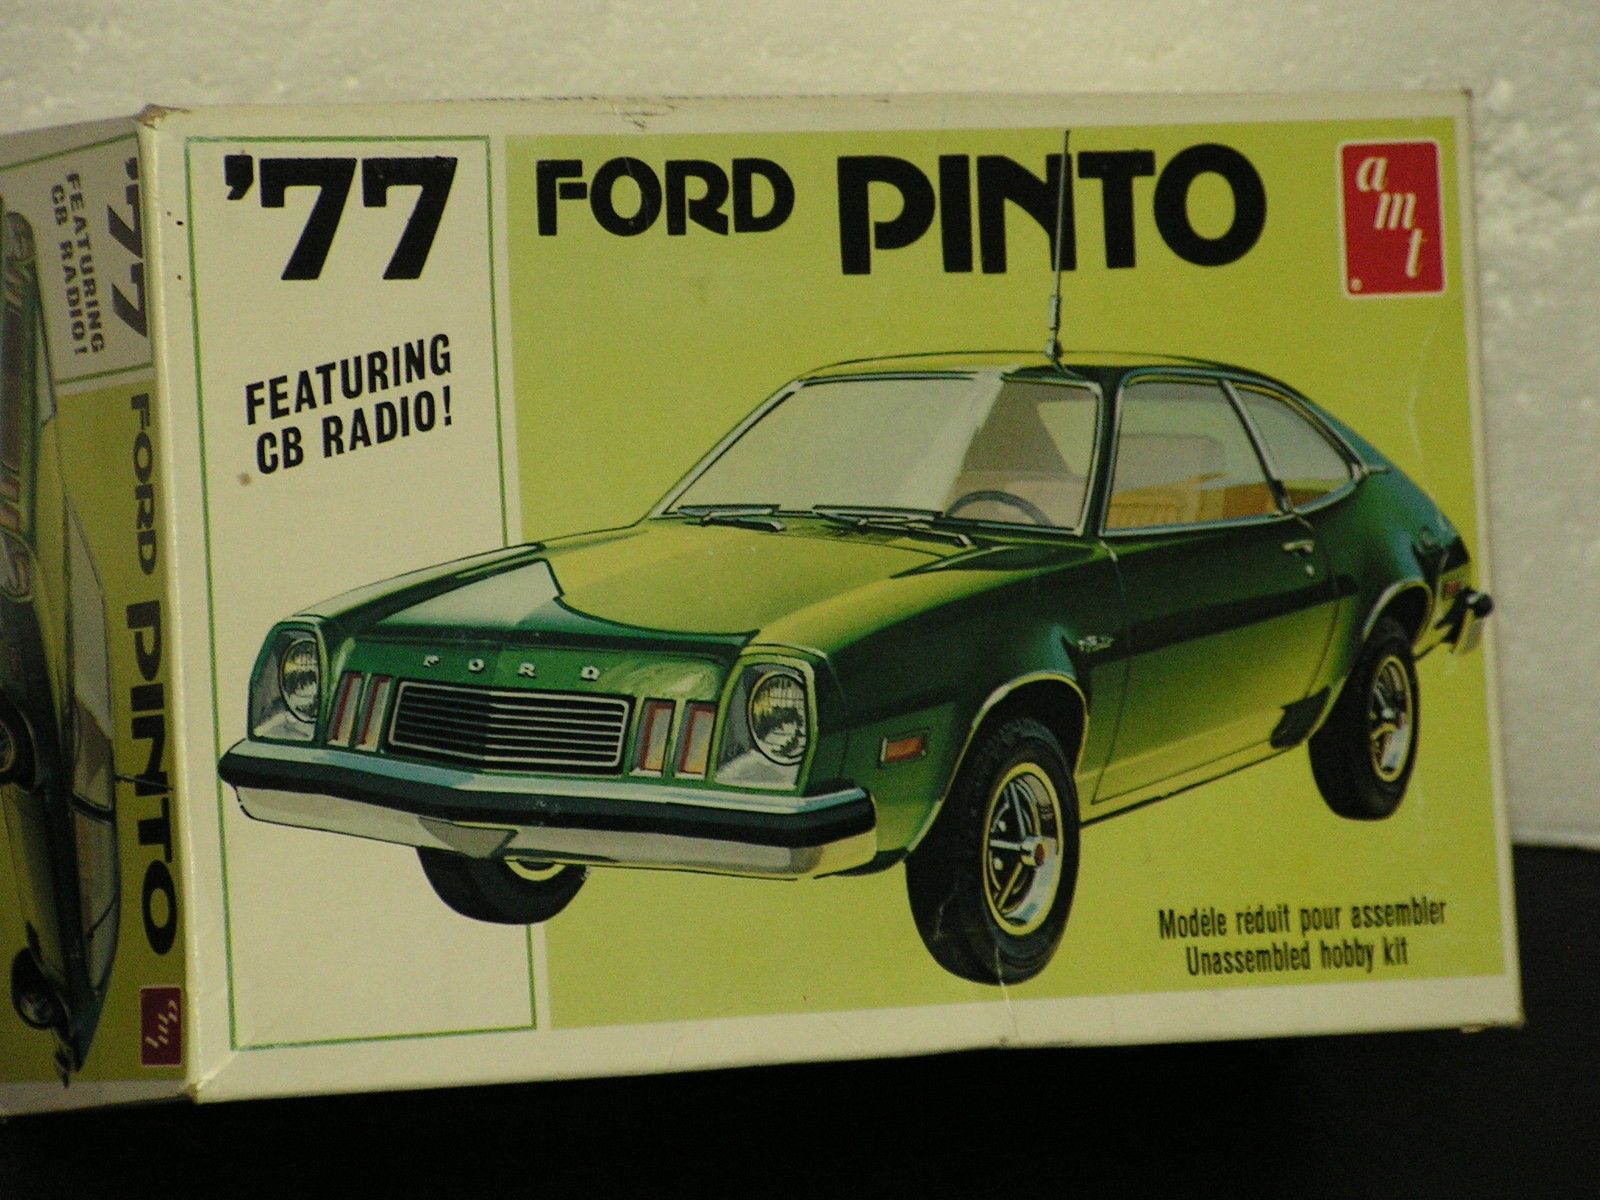 amt t485 1 25 1977 ford pinto annual kit open ebay [ 1600 x 1200 Pixel ]